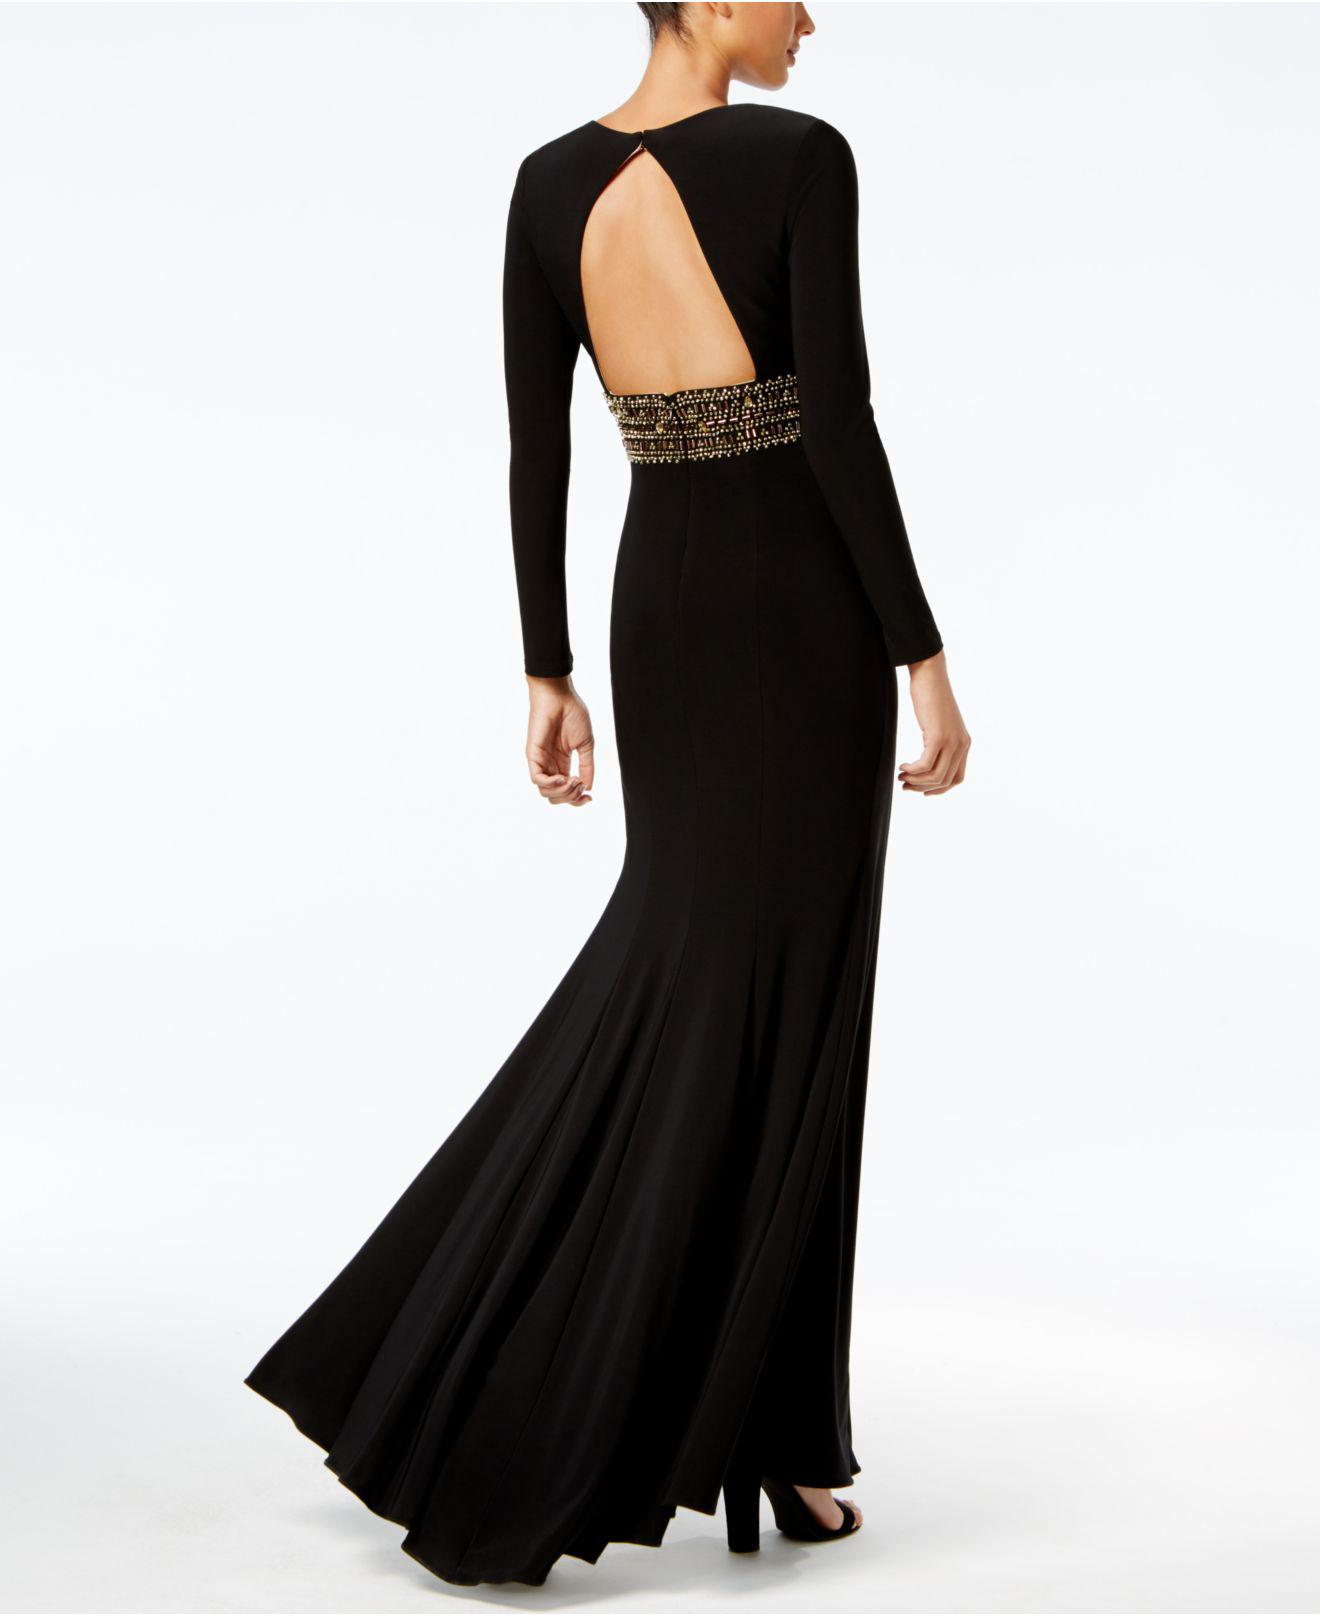 b101c8a4 Xscape Embellished A-line Gown in Black - Lyst